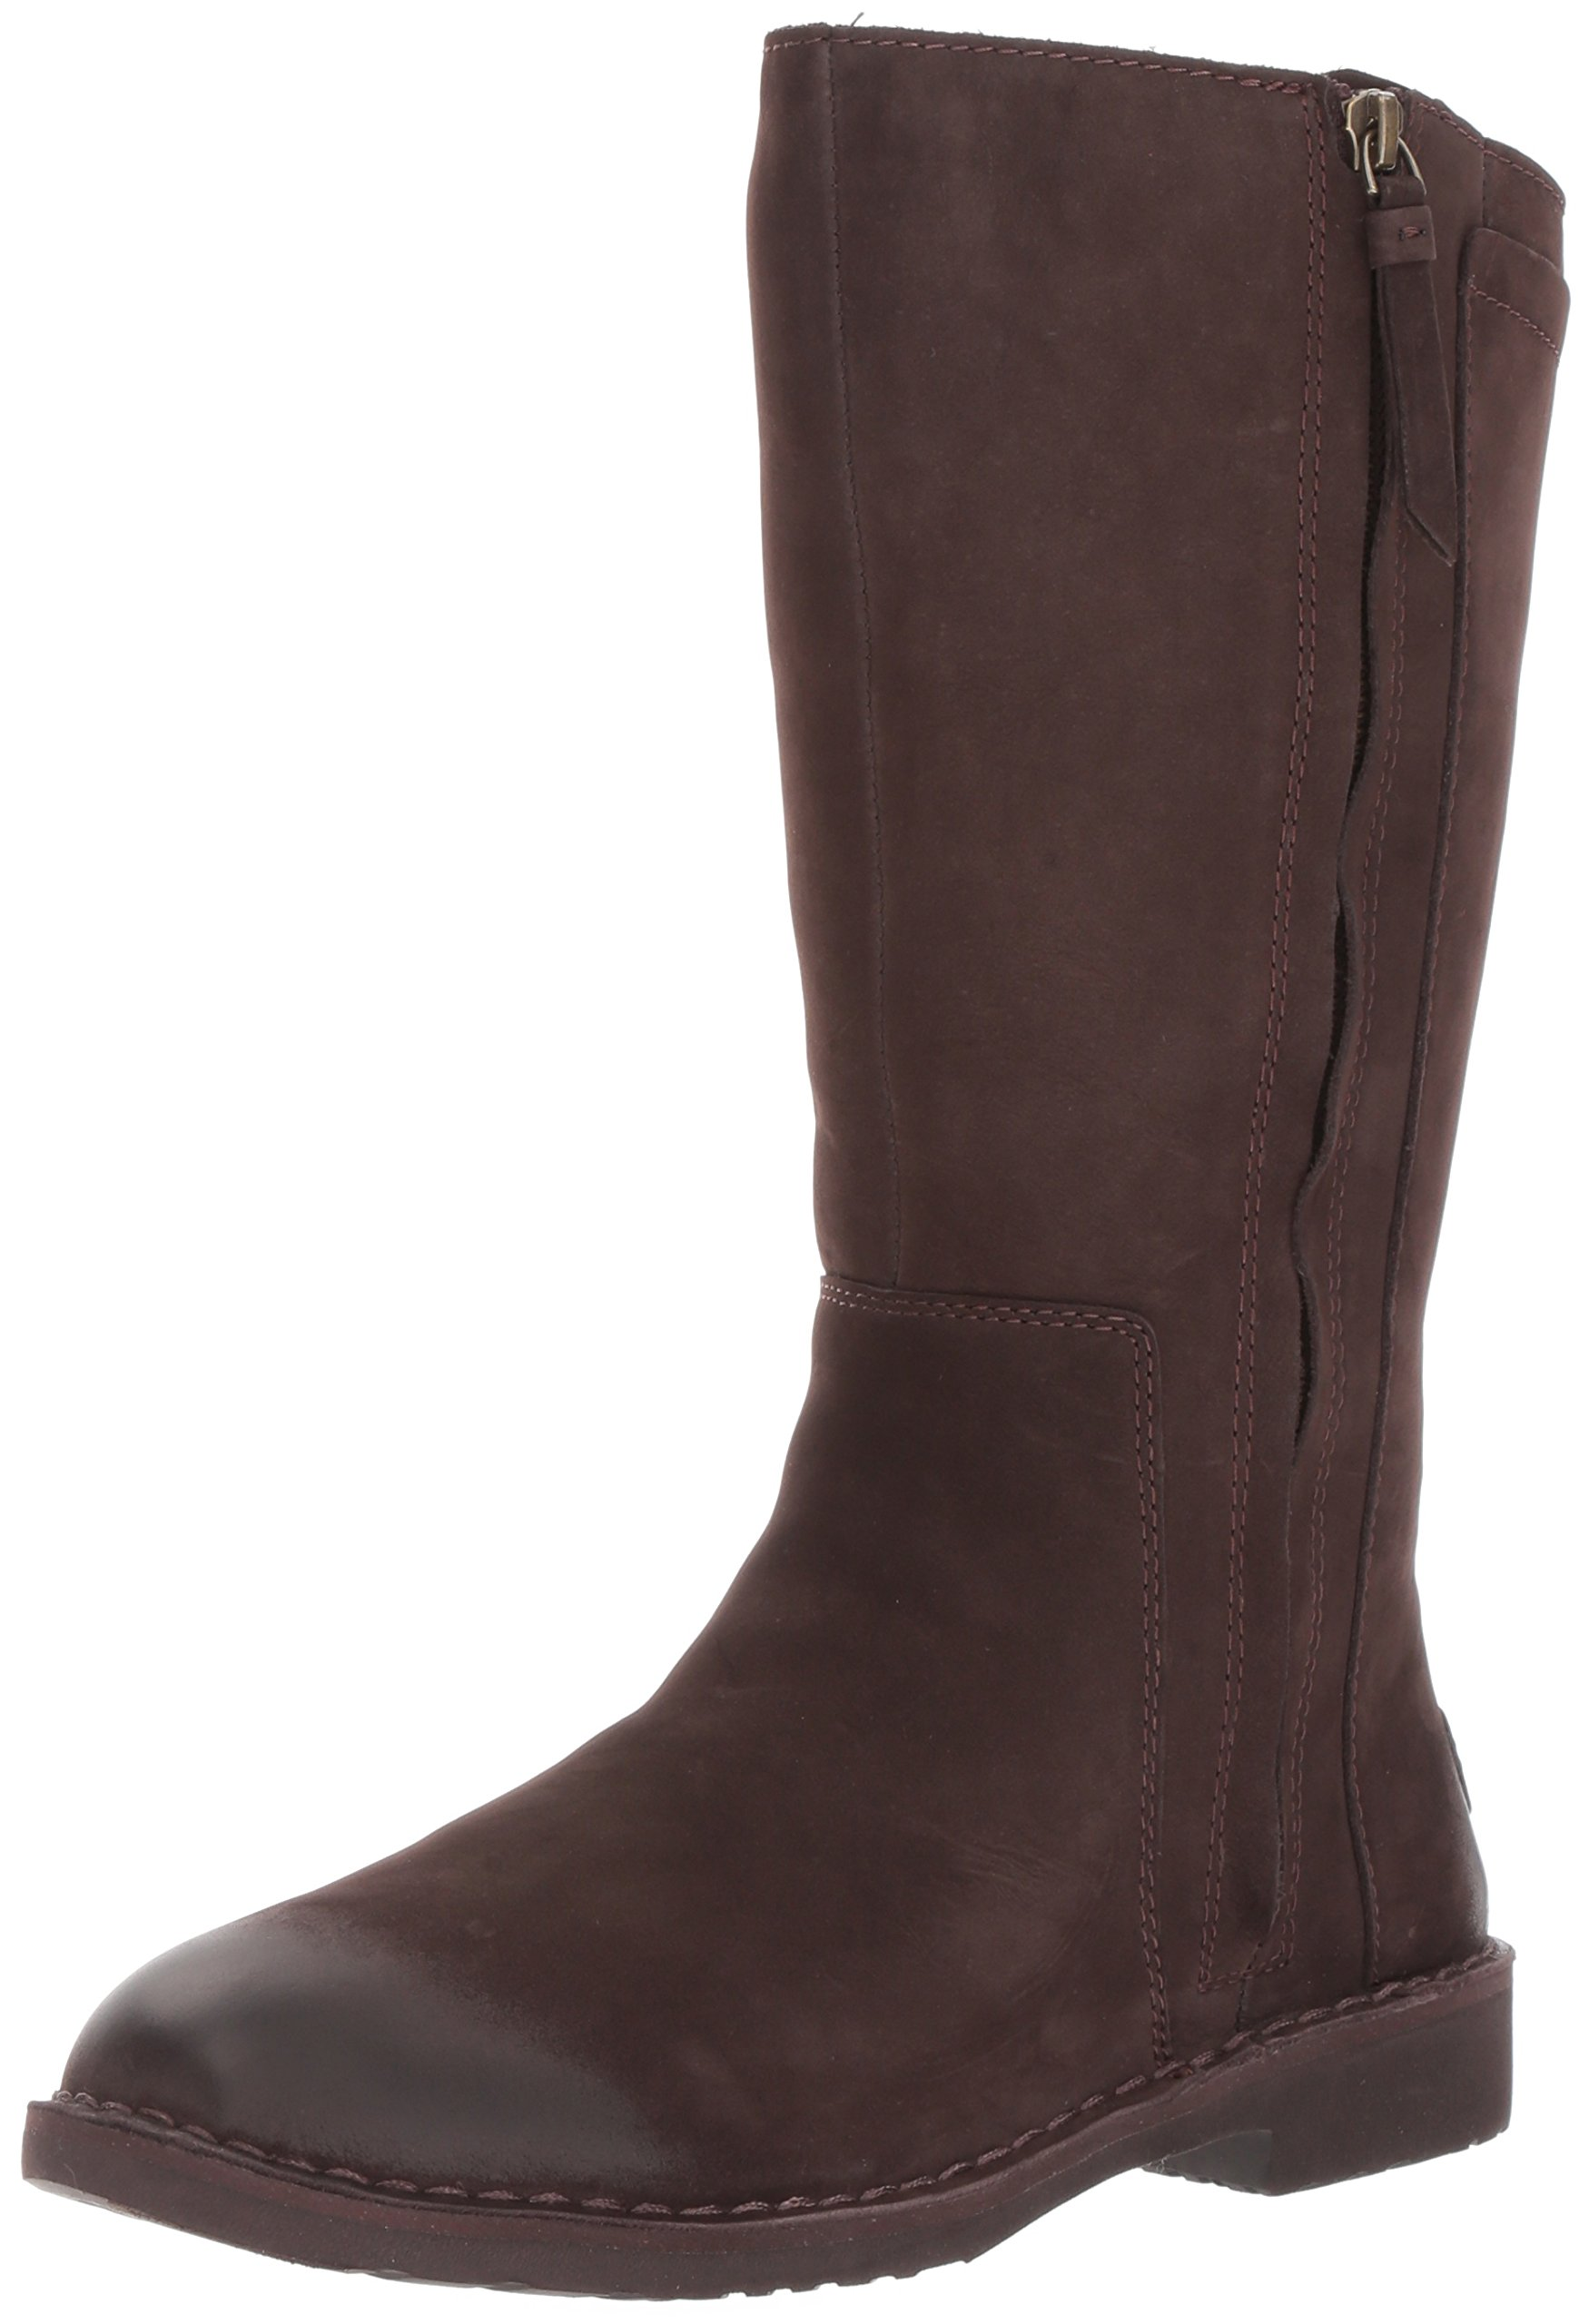 UGG Women's Elly Winter Boot, Stout, 11 M US